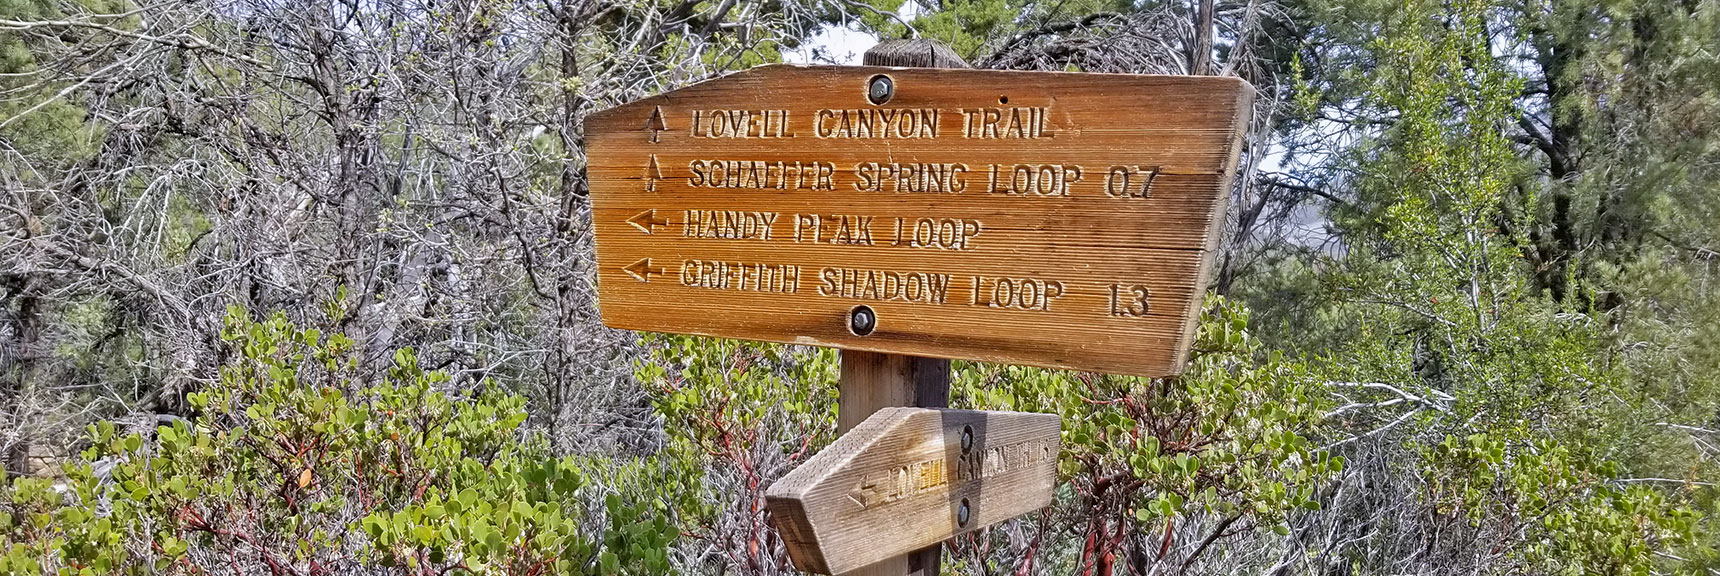 Beginning of Griffith Shadow Loop, Lovell Canyon Trail, La Madre Mountains Wilderness, Nevada